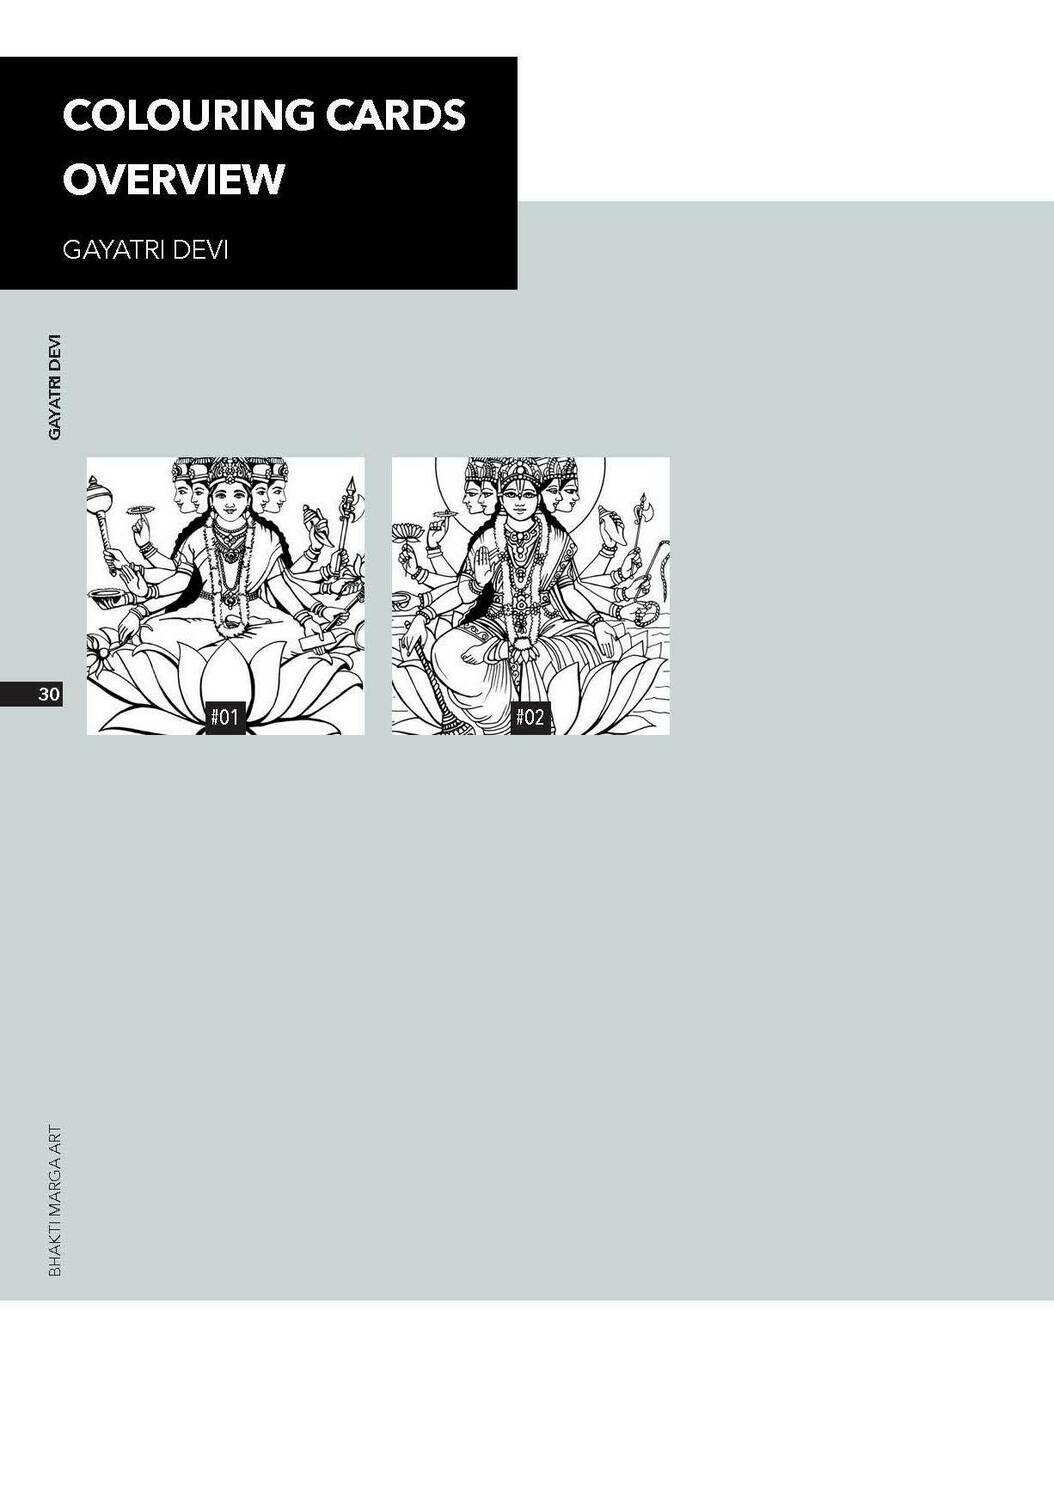 Colouring Cards 'GAYATRI DEVI'